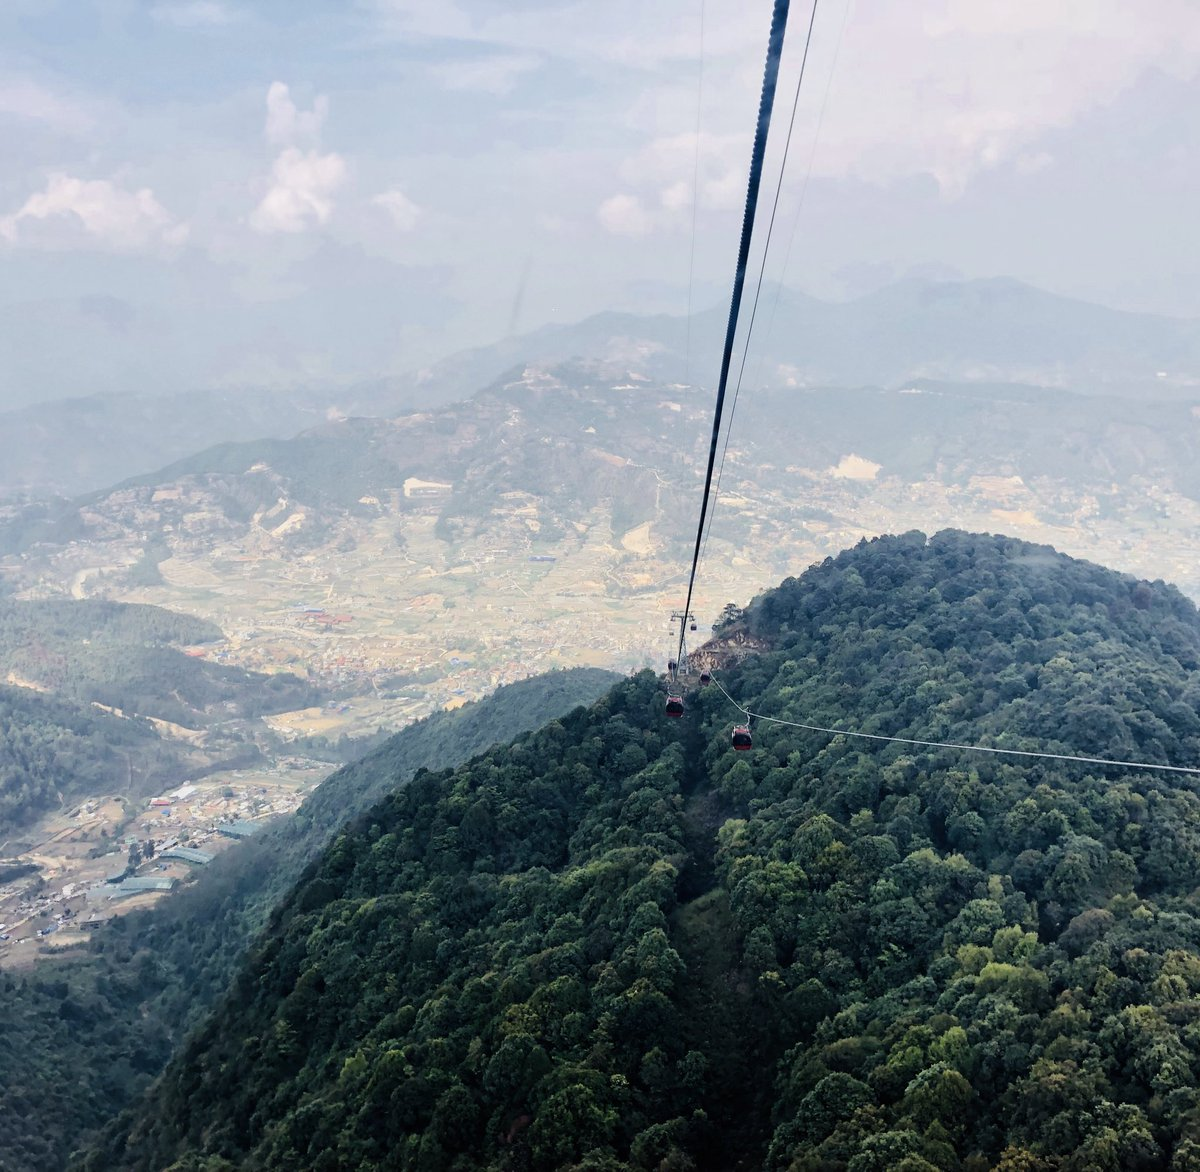 Putting an aerosol mass spectrometer on Chandragiri cable cars: best or worst idea yet? #Nepal #NAMaSTE3 <br>http://pic.twitter.com/SgeXVA1YPa